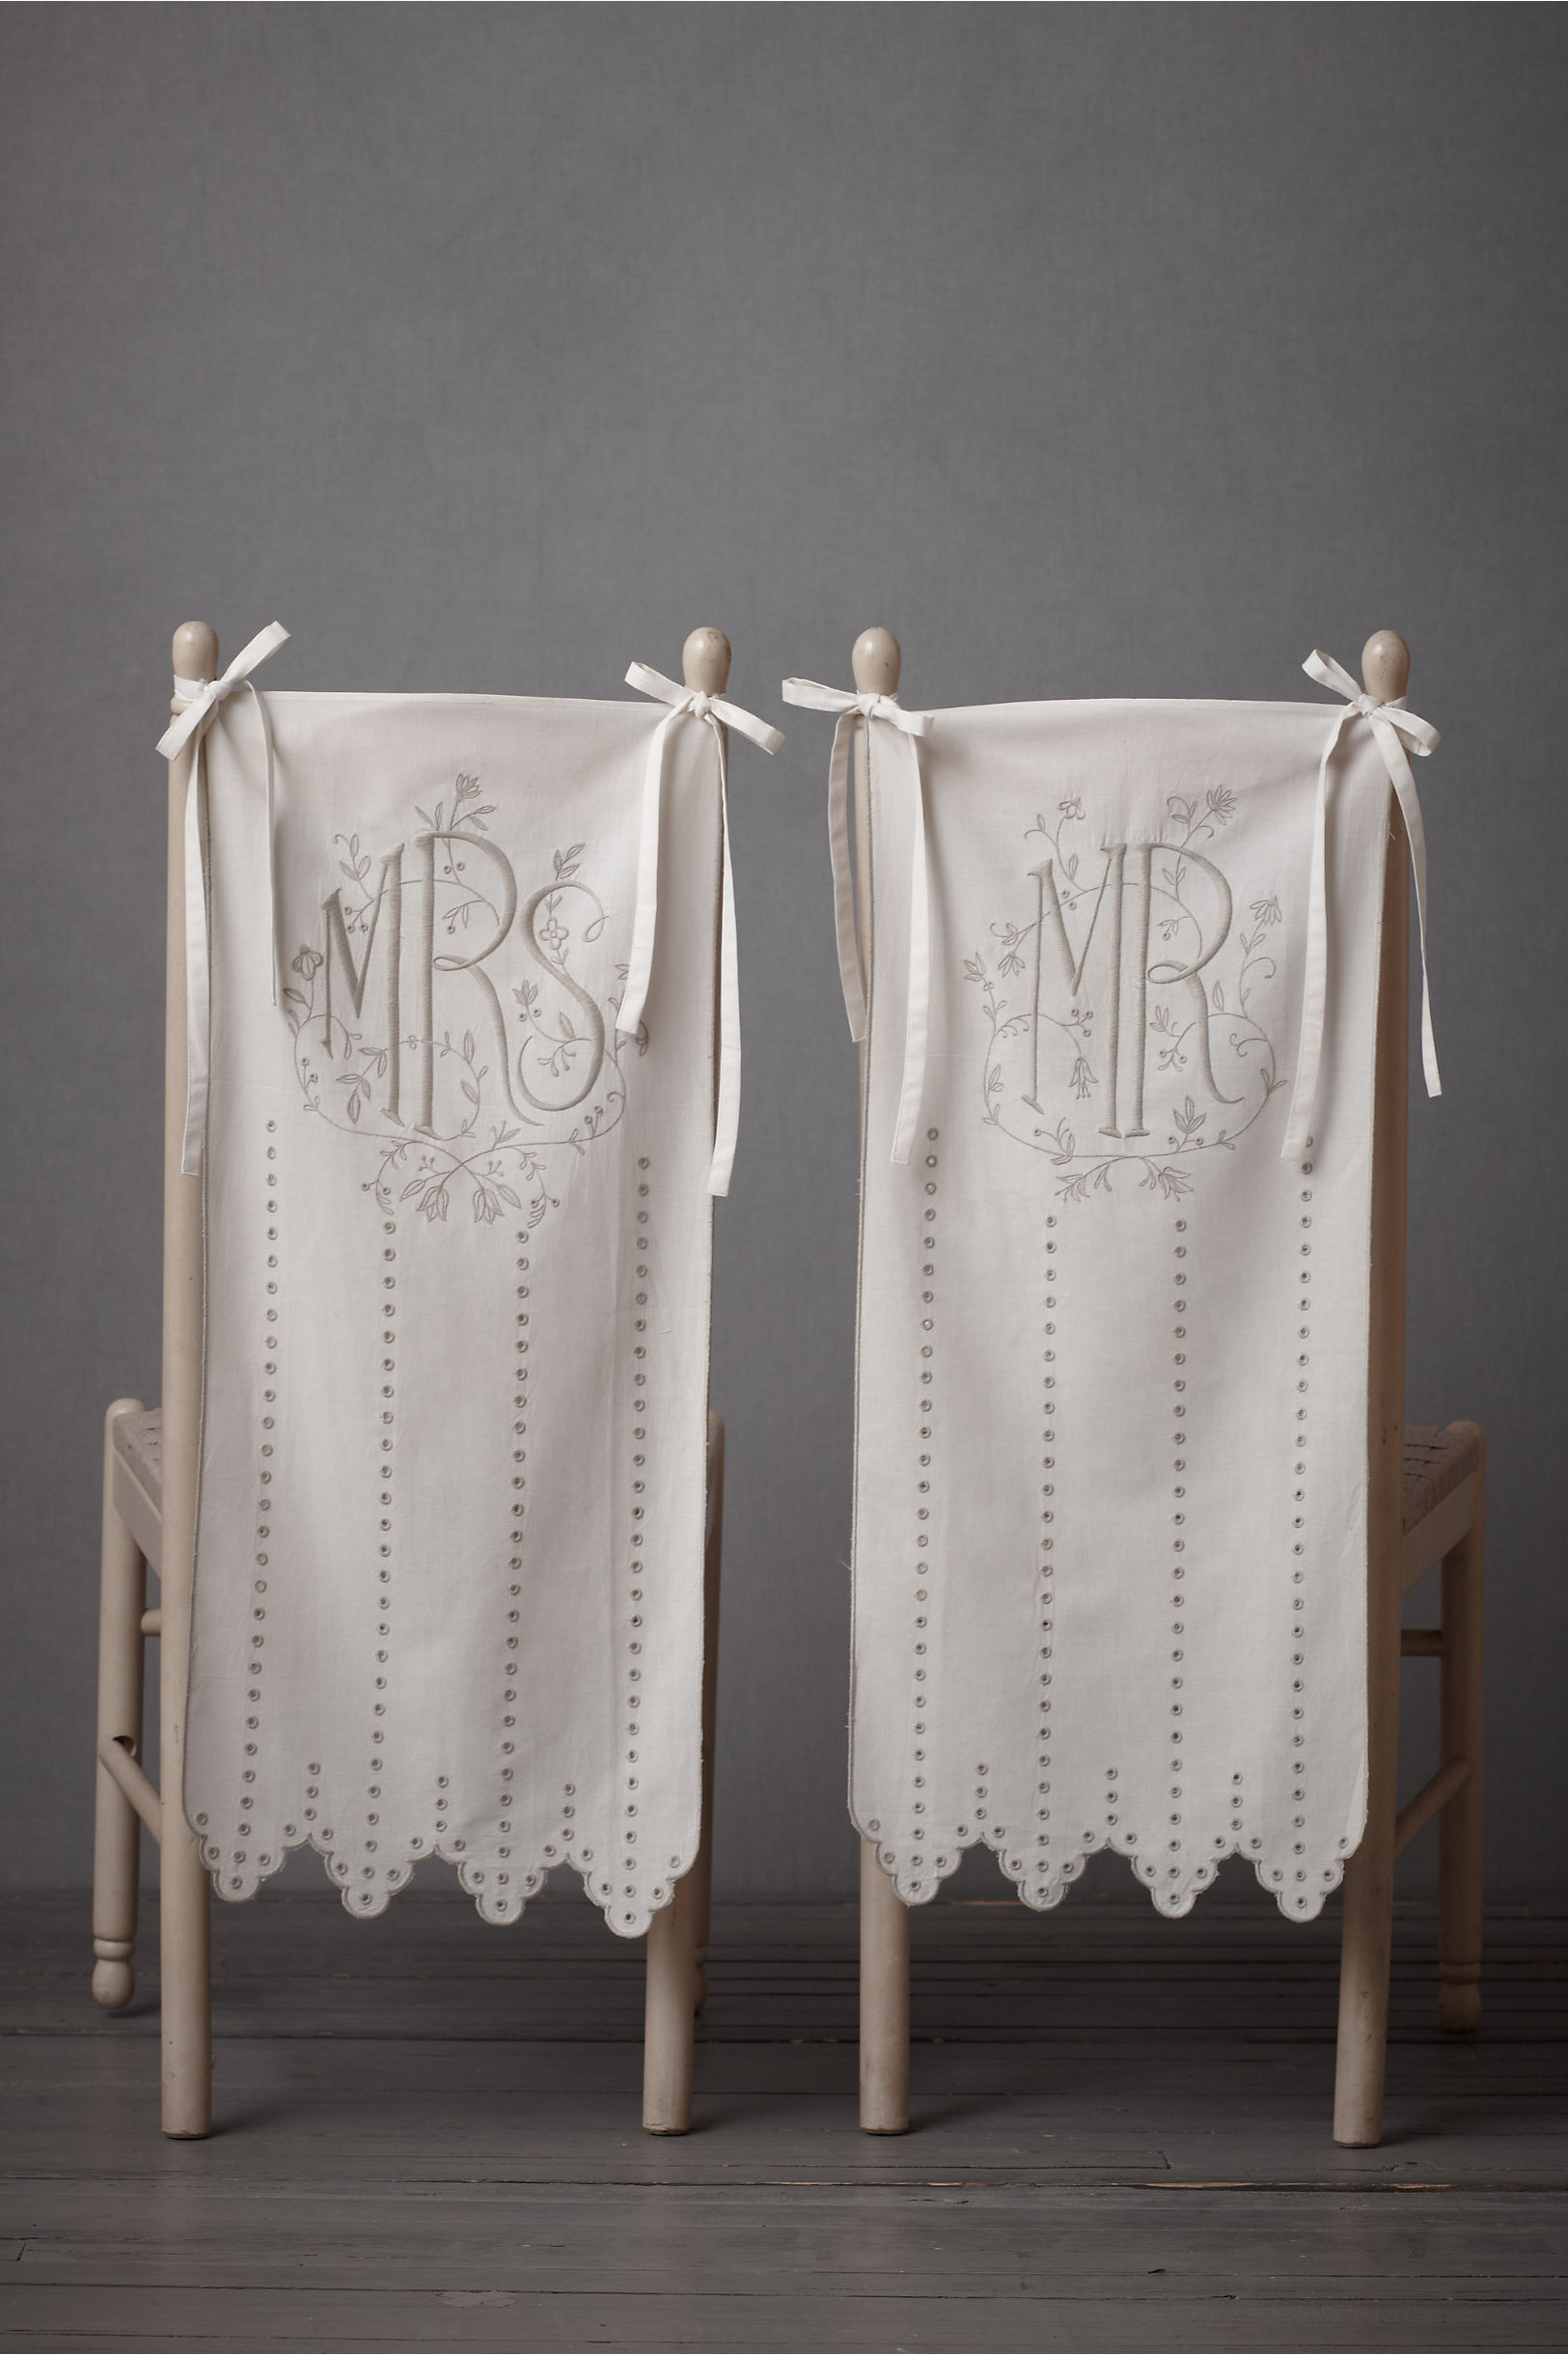 Eyelet Chair Banners in Sale